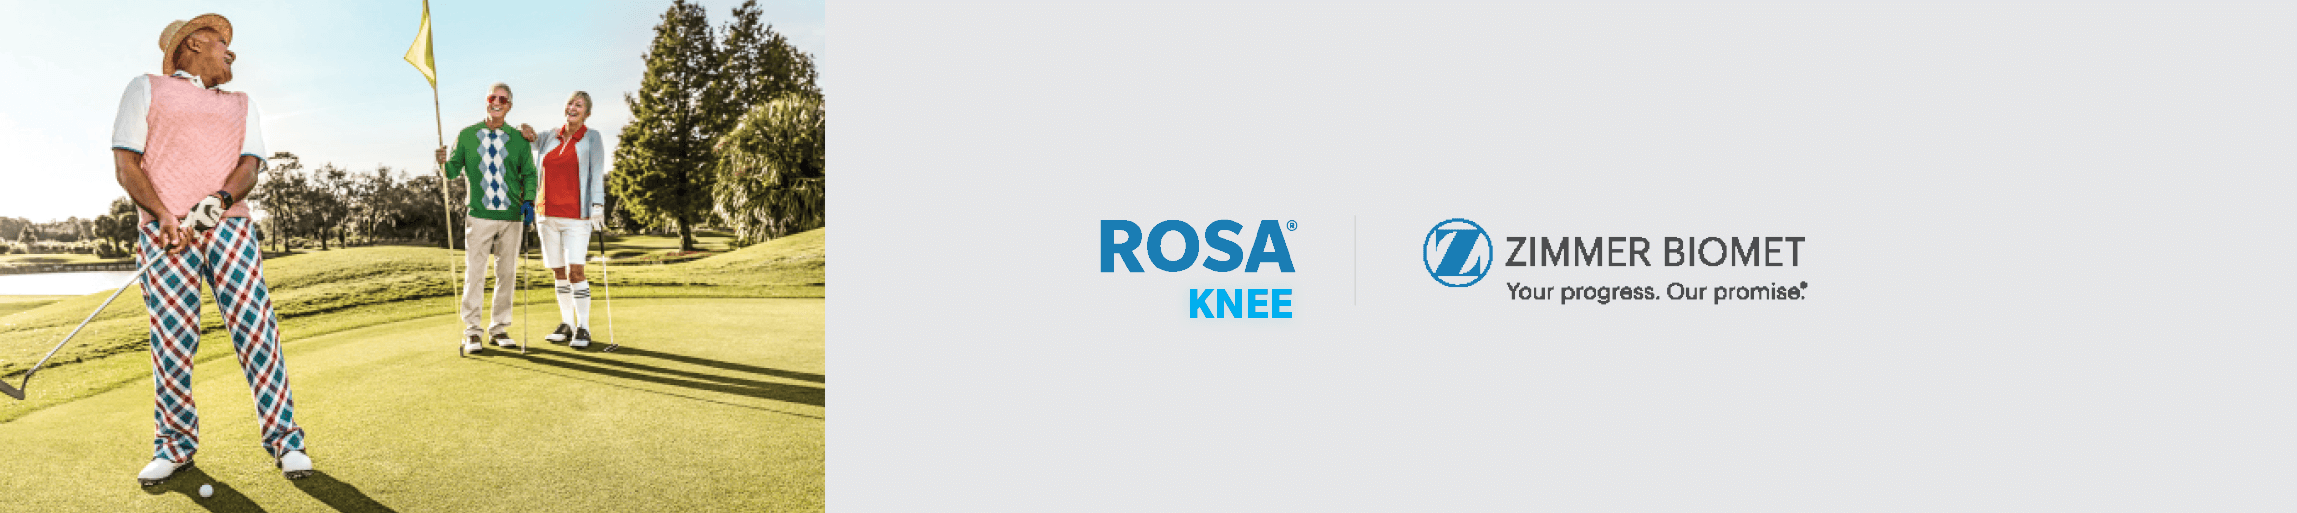 footer-rosa